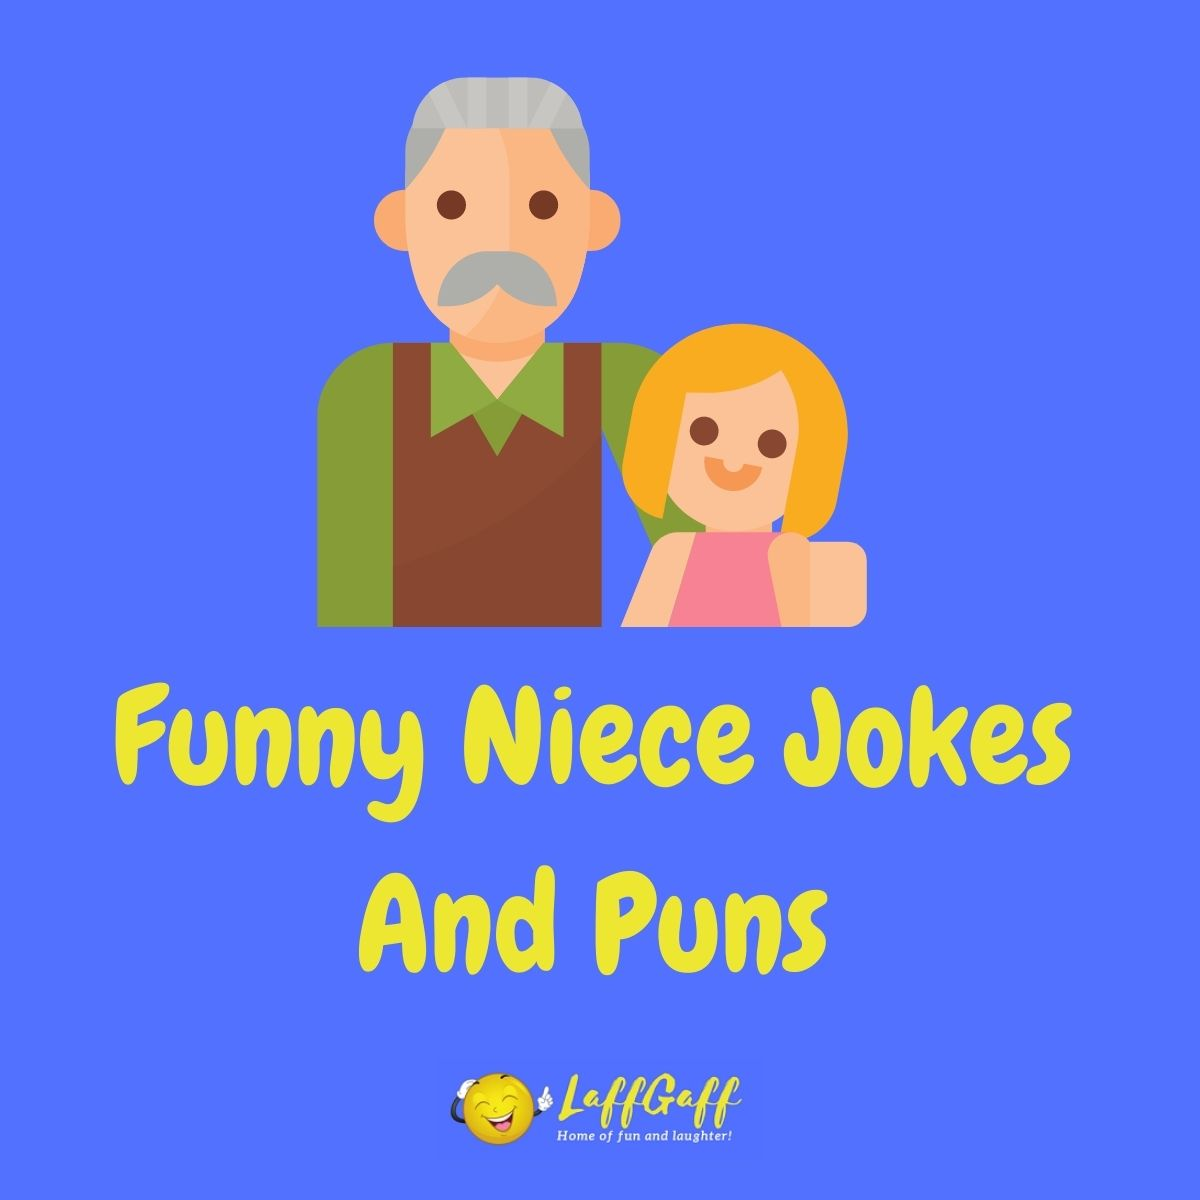 Featured image for a page of funny niece jokes and puns.